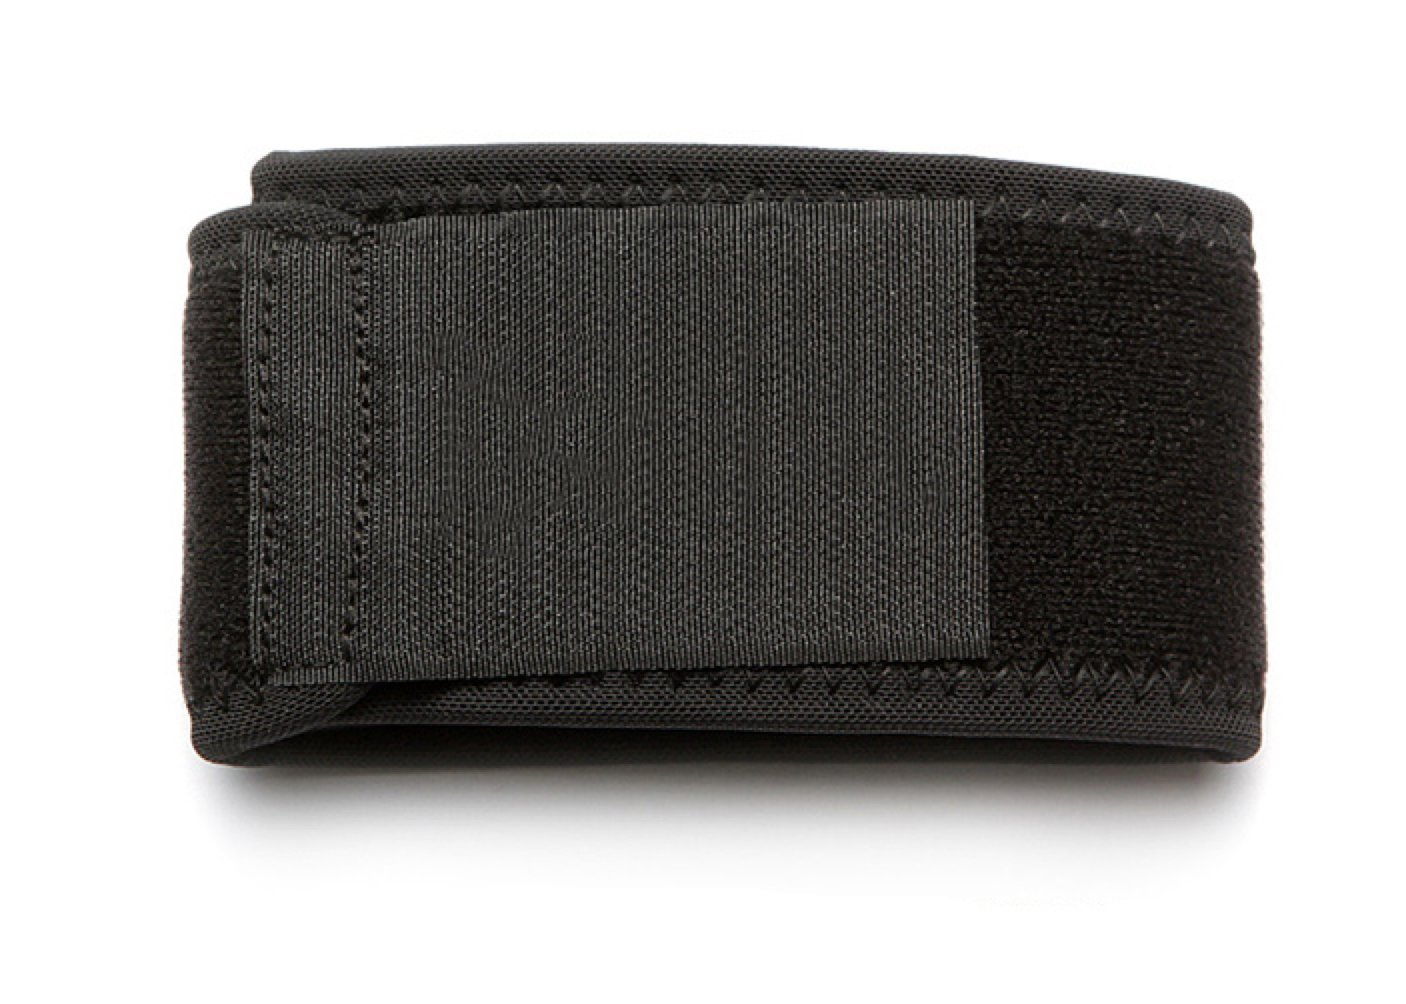 Single and Sprains for Weak and Sore Wrists Quantro Wrist Support // Wrist Strap // Wrist Brace // Hand Support Fits BOTH Hands and Helps with Carpal Tunnel Arthritis Tendonitis RSI